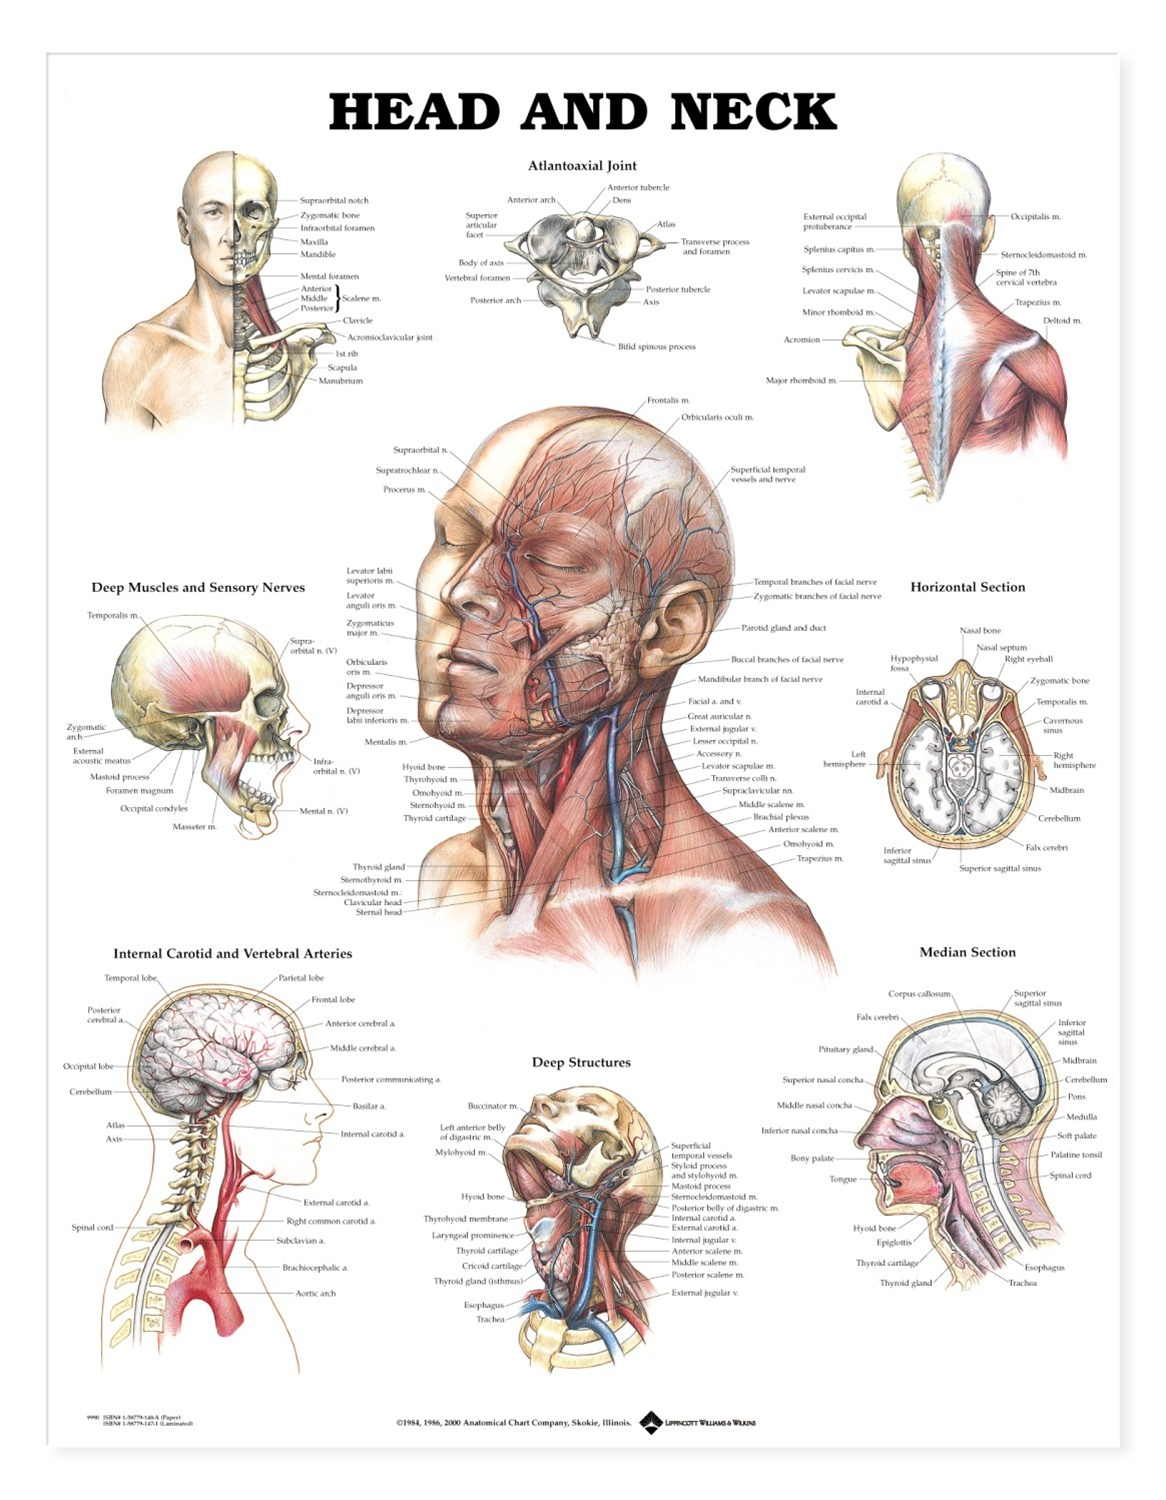 Head and Neck Anatomical Chart - Anatomy Models and Anatomical Charts